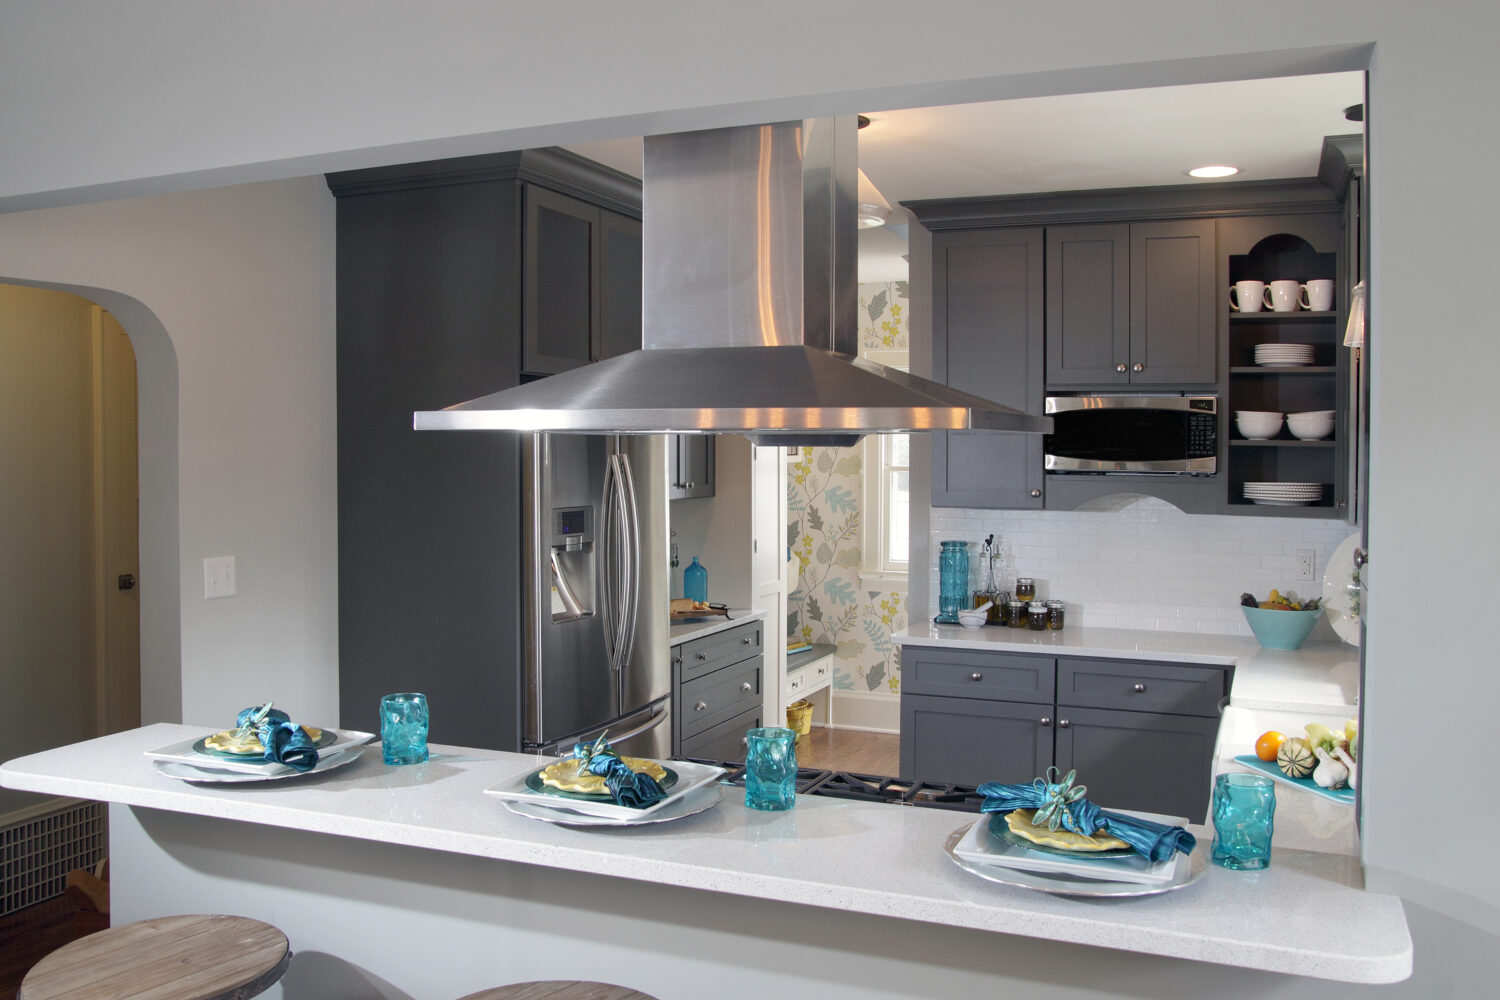 A dark gray painted kitchen deisgn with a peninsula with seating for guests to watch as the chef cooks and entertains.